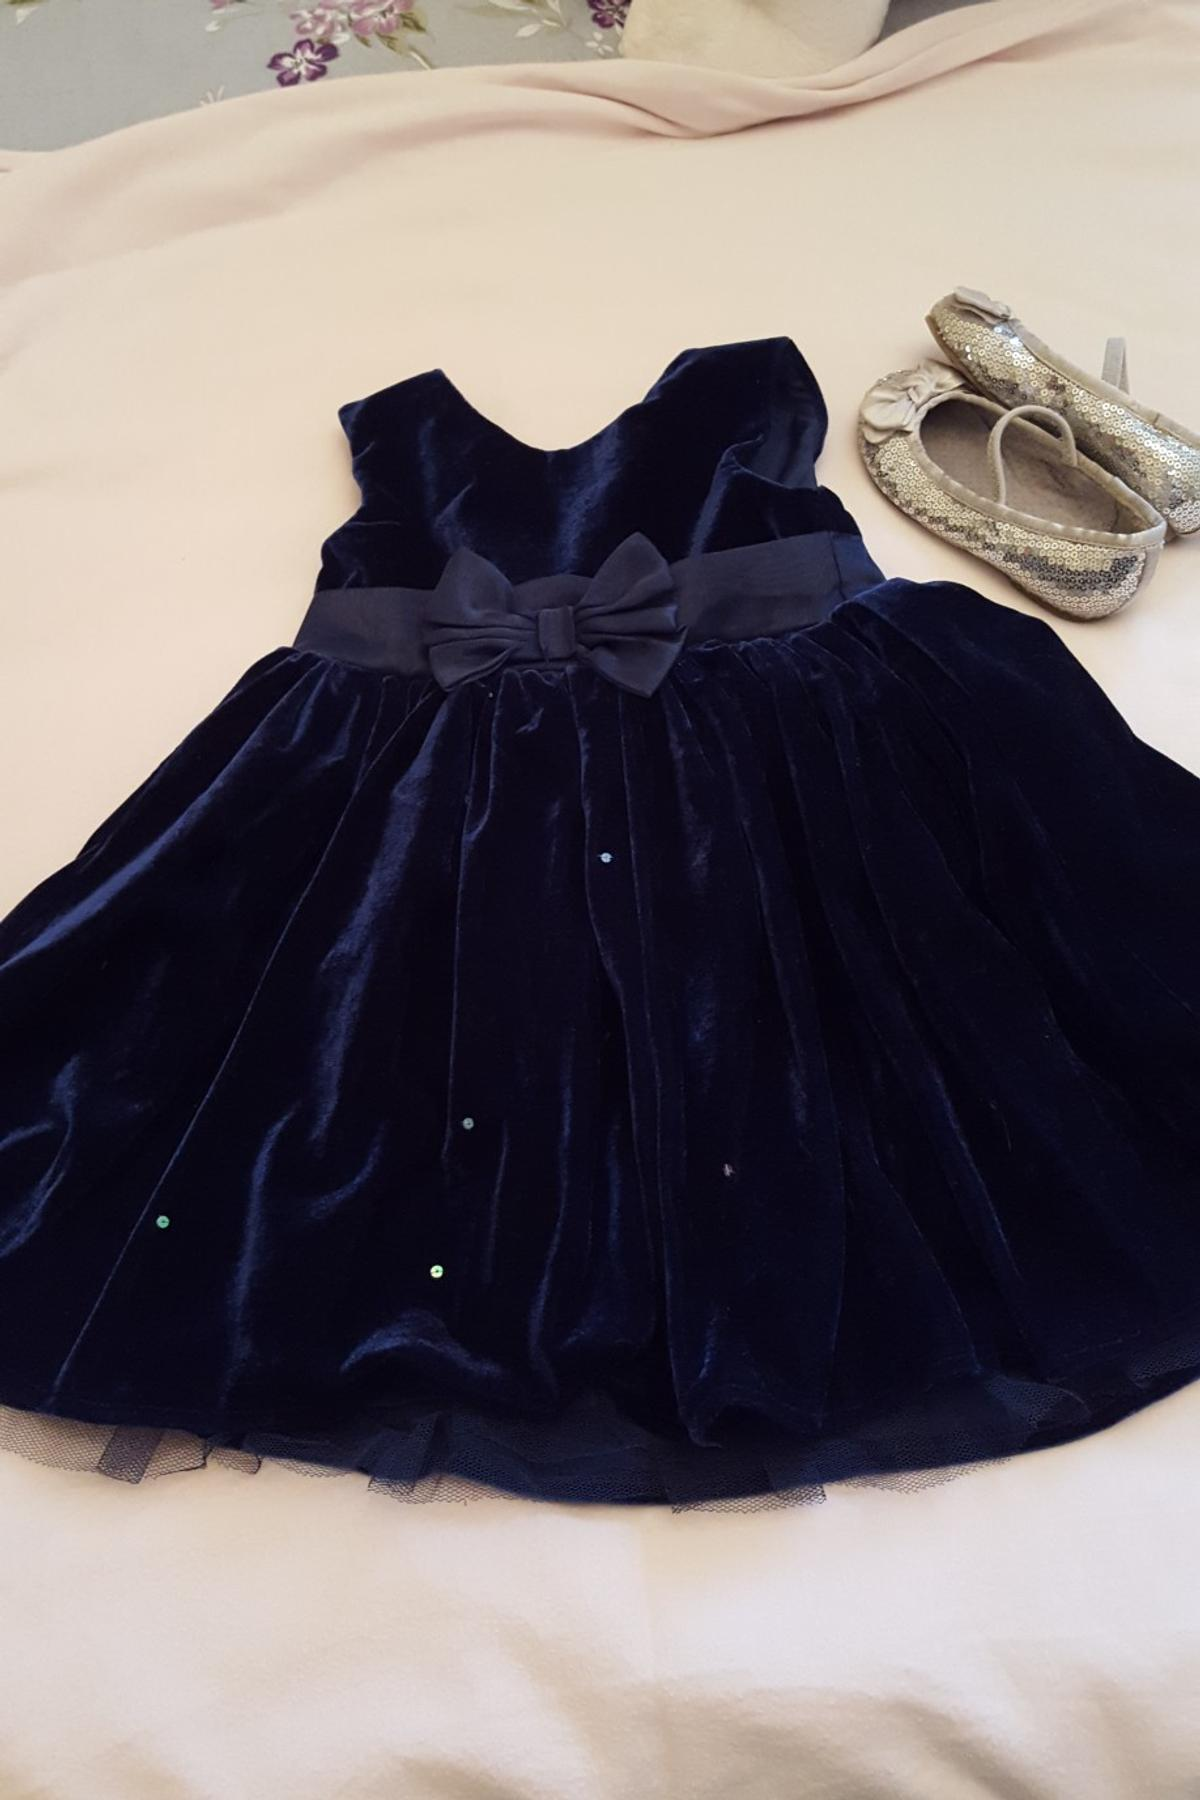 Royal Blue Velvet Dress And Silver Shoes In Wv14 Wolverhampton For 5 00 For Sale Shpock